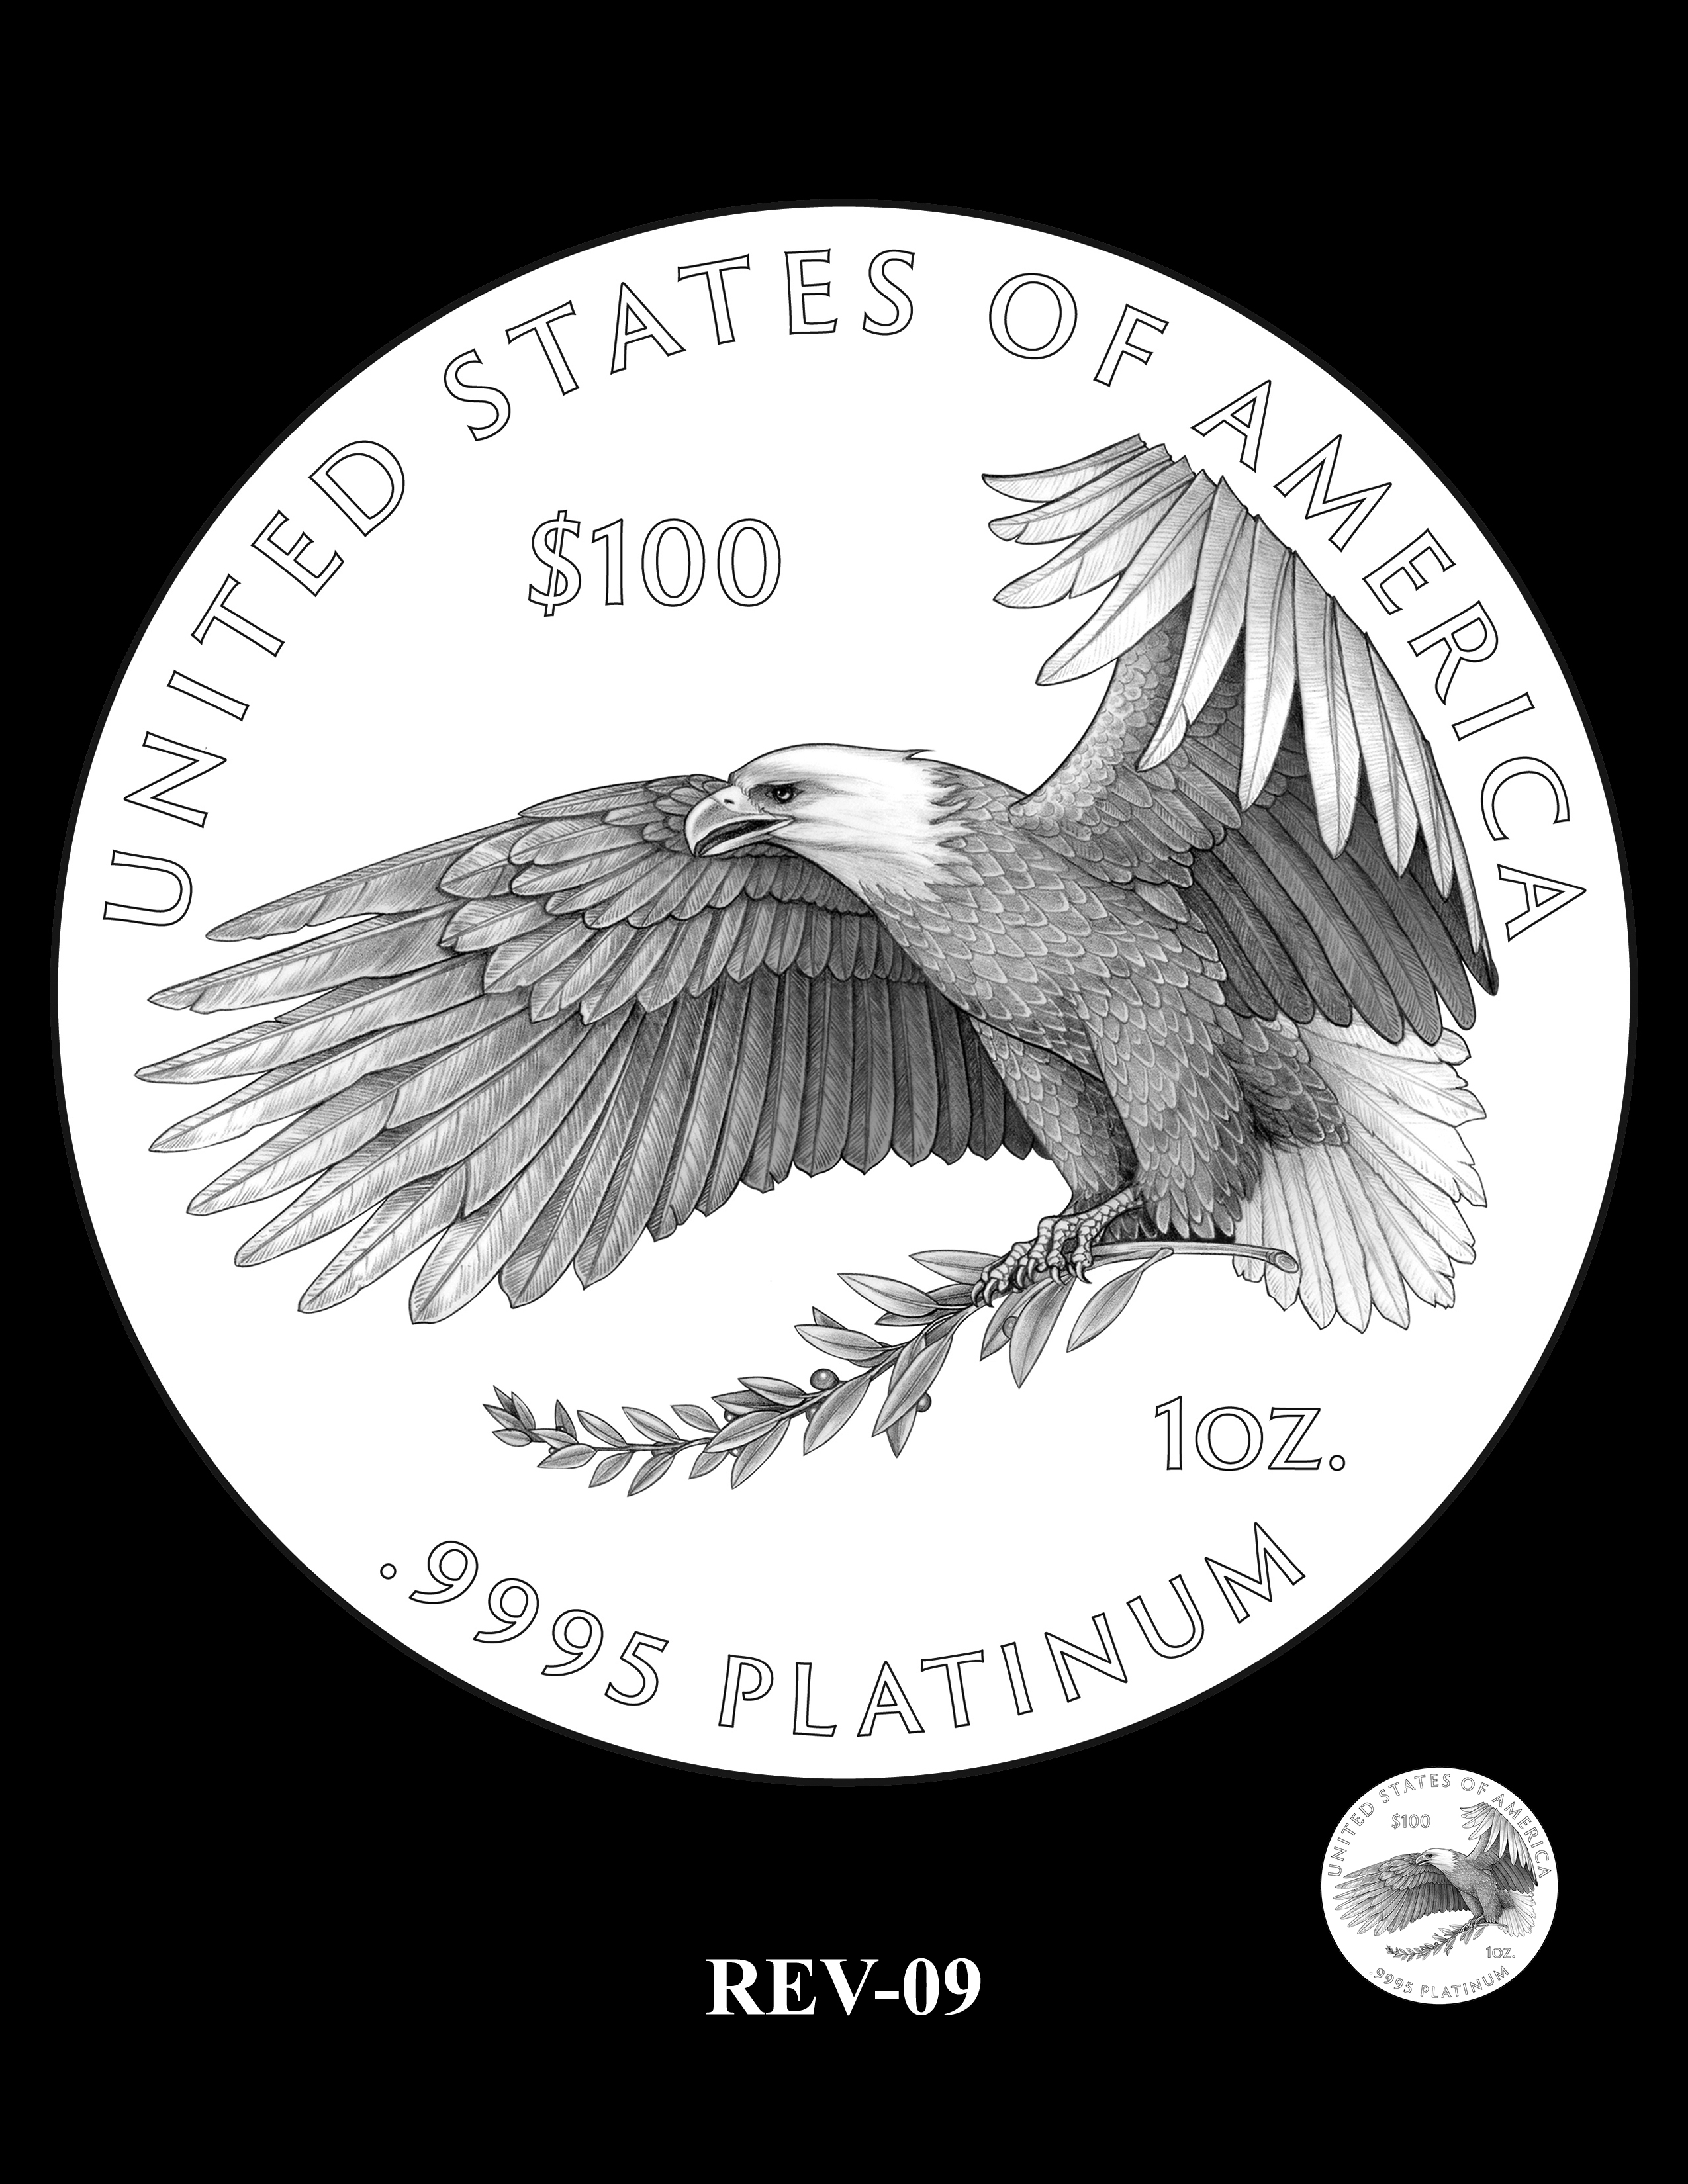 REV-09 - 2018 2019 and 2020 American Eagle Platinum Proof Program